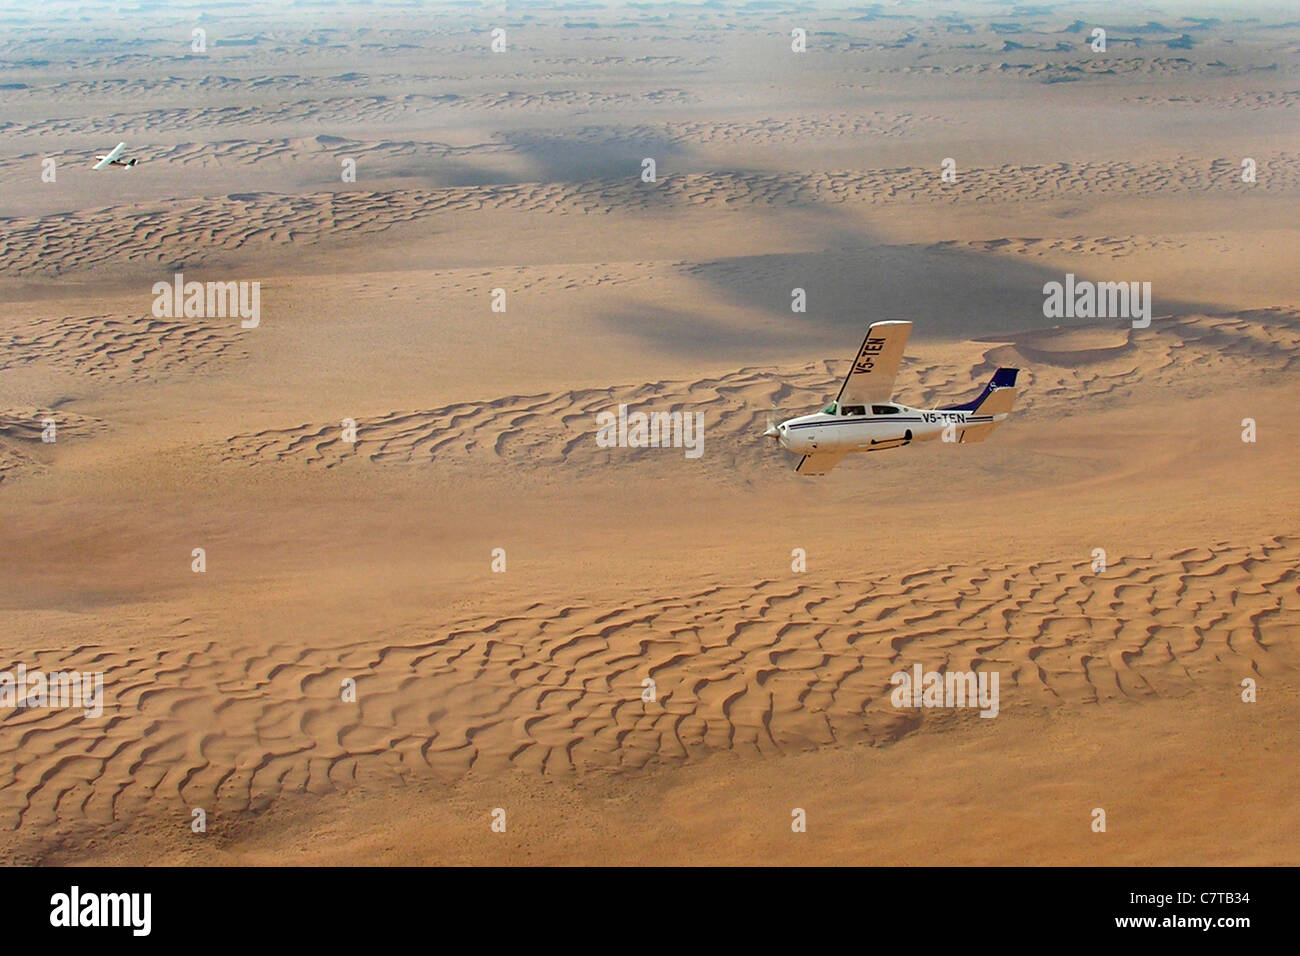 Africa, Namibia, aerial view of the desert and Cessna 210 airplane - Stock Image